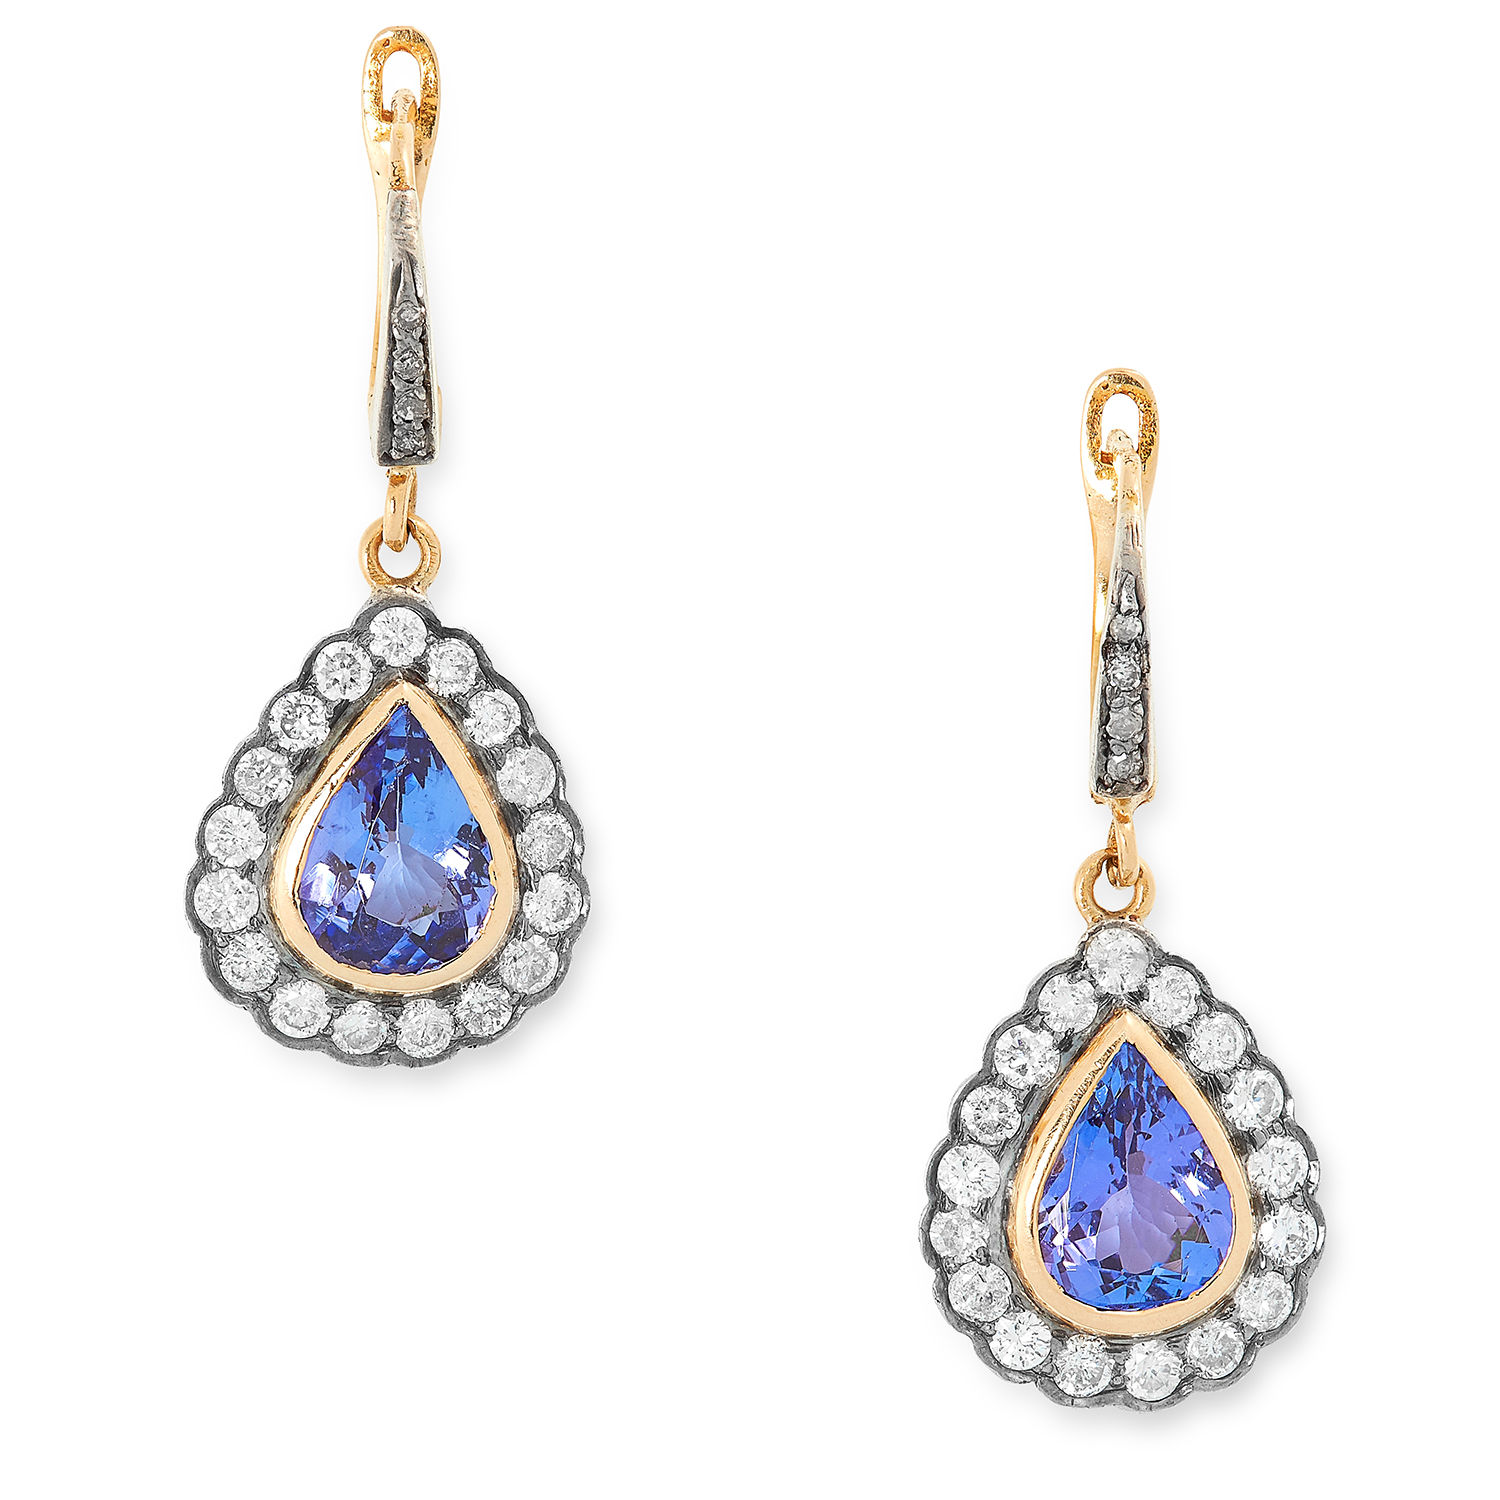 Los 21 - TANZANITE AND DIAMOND CLUSTER EARRINGS each set with a pear cut tanzanite in a cluster of round